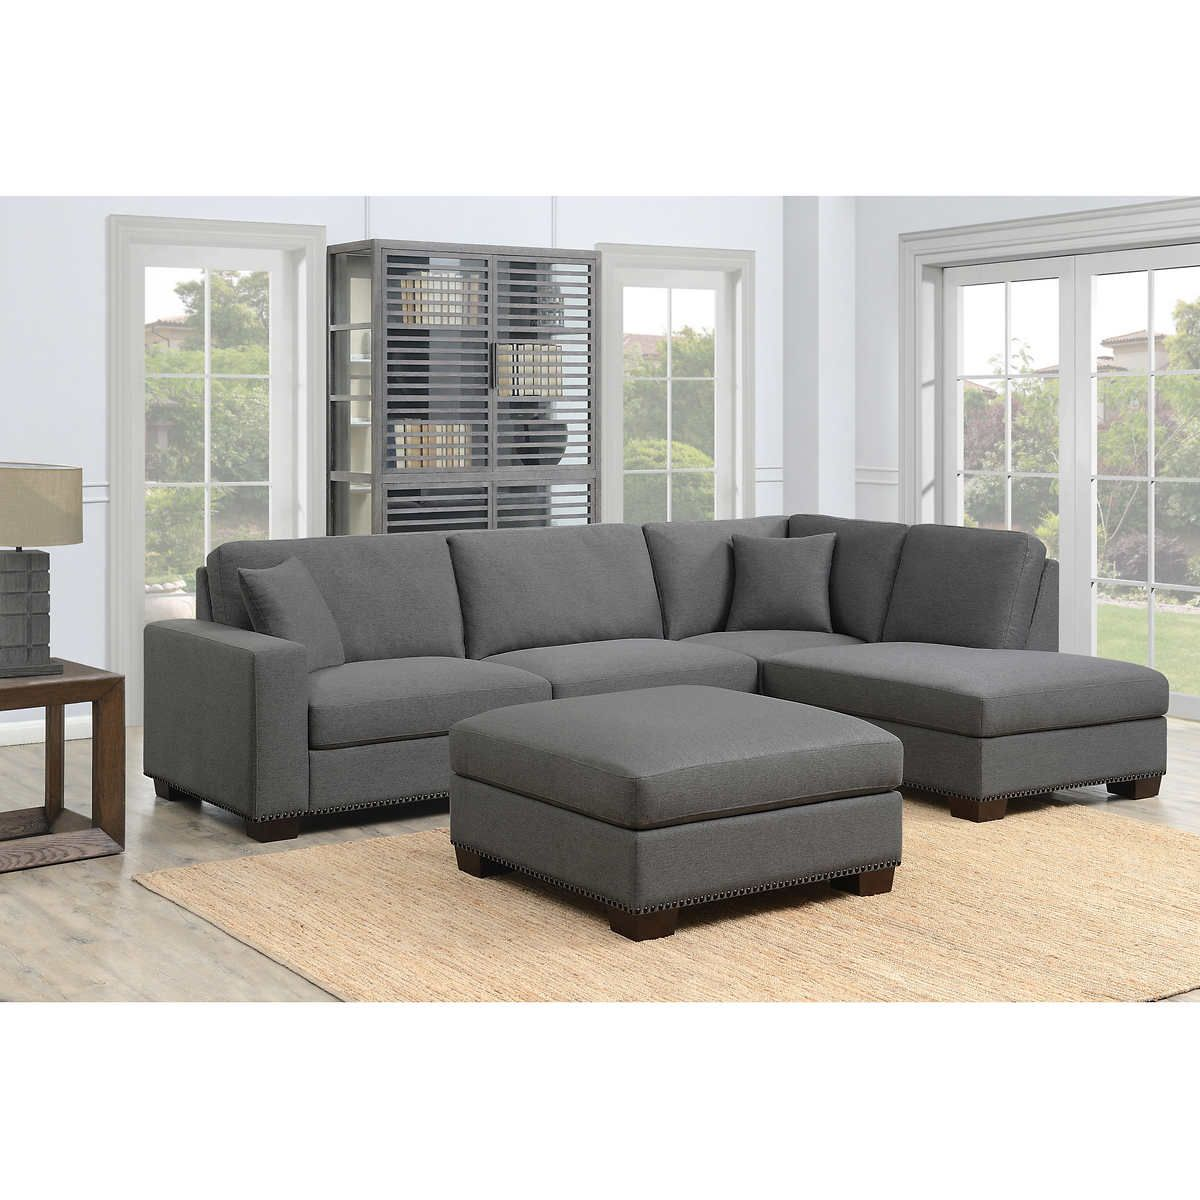 Thomasville Artesia 3 Piece Fabric Sectional With Ottoman Fabric